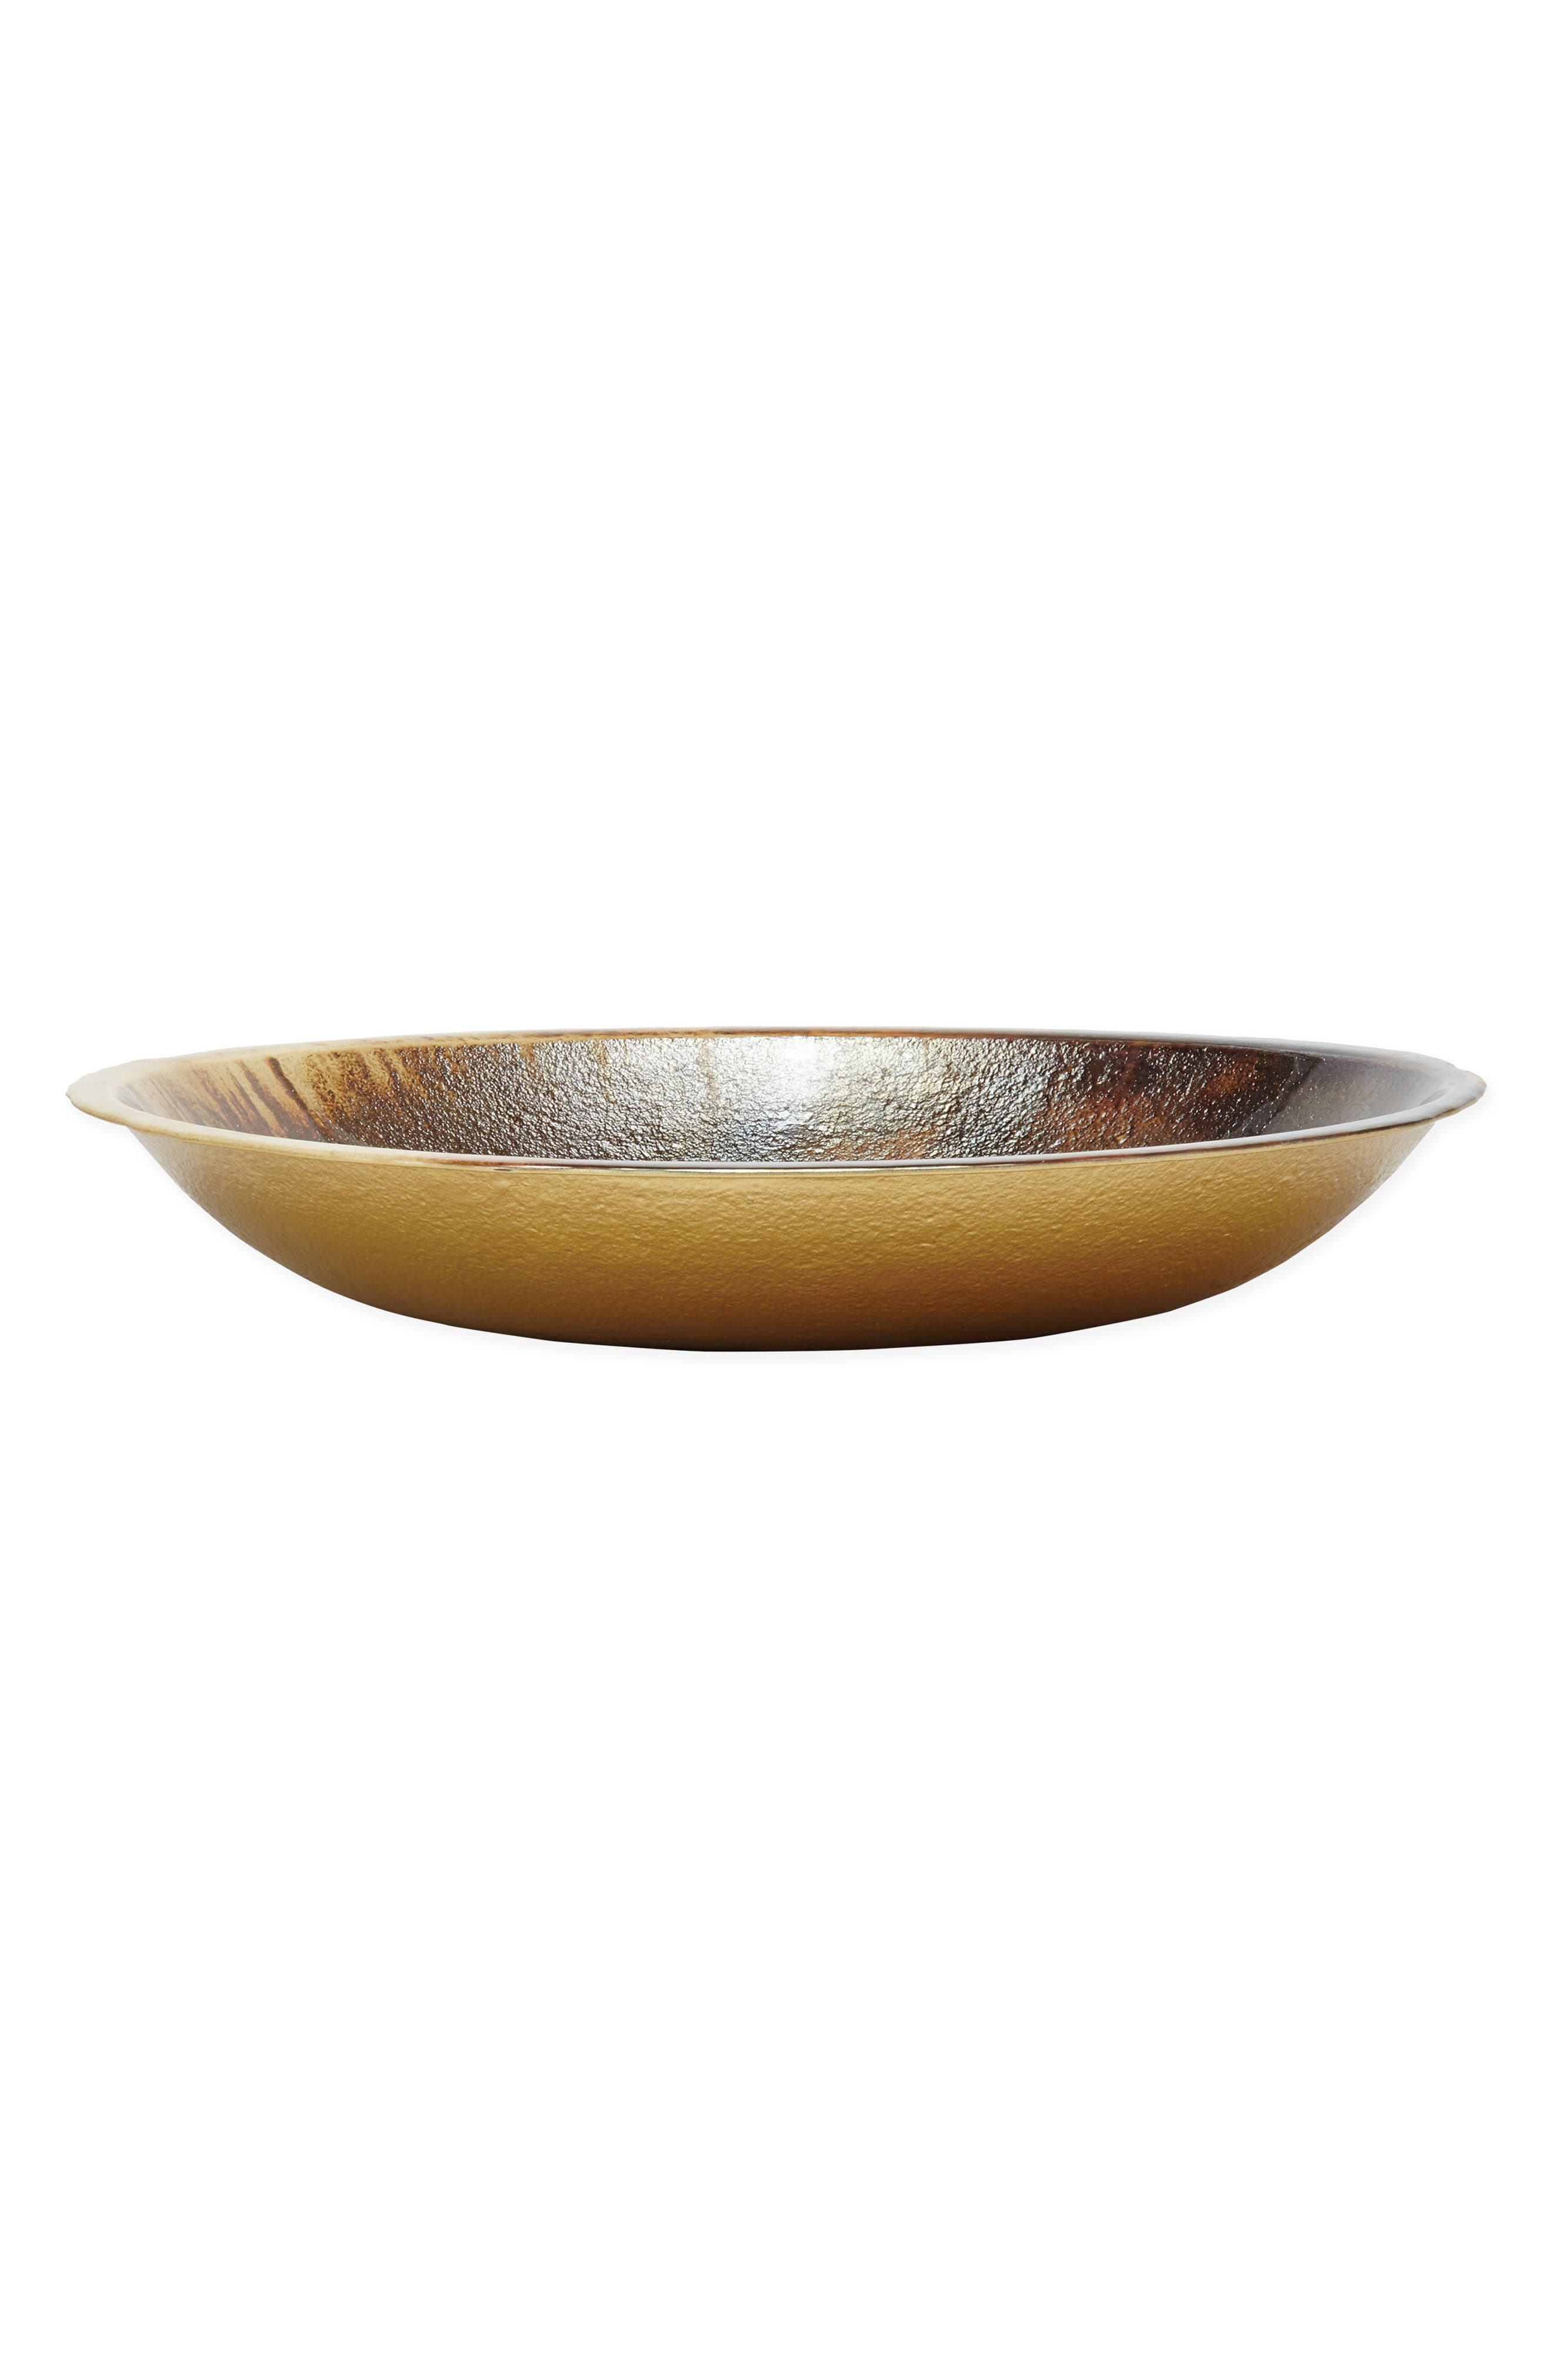 Earth Glass Centerpiece,                             Alternate thumbnail 2, color,                             BROWN/ GOLD